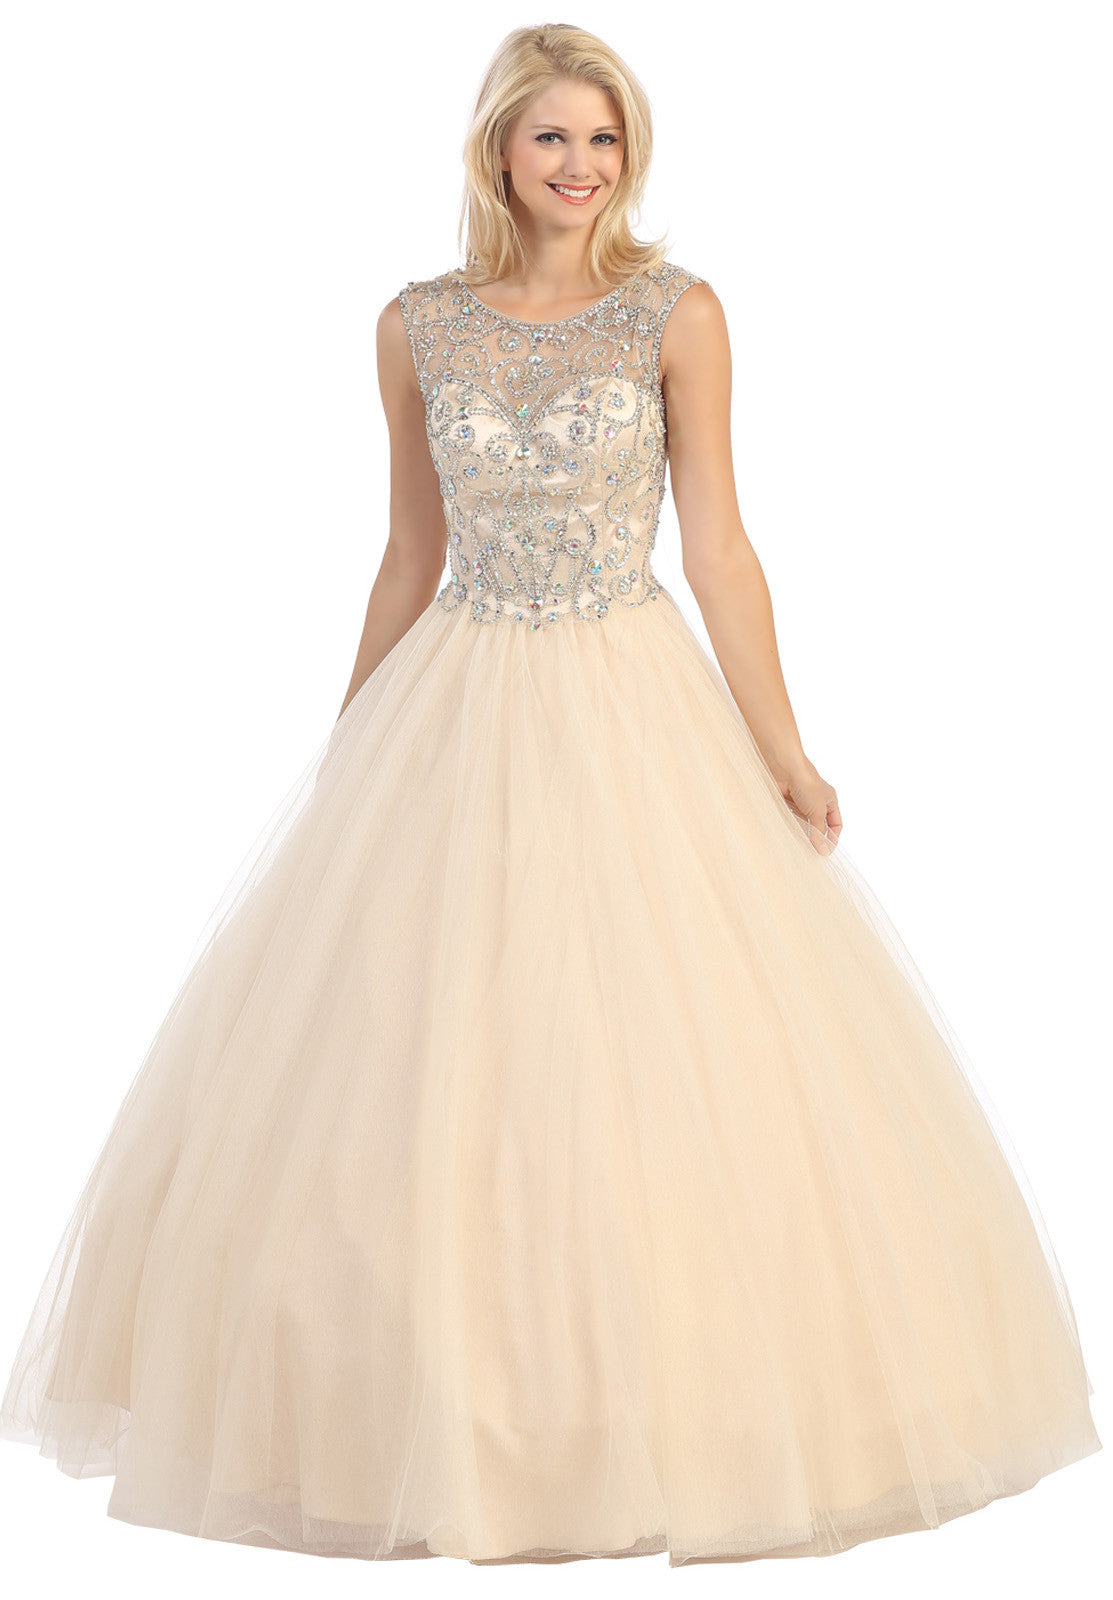 Meshed Yoke Bateau Neckline Champagne/Gold Ball Gown